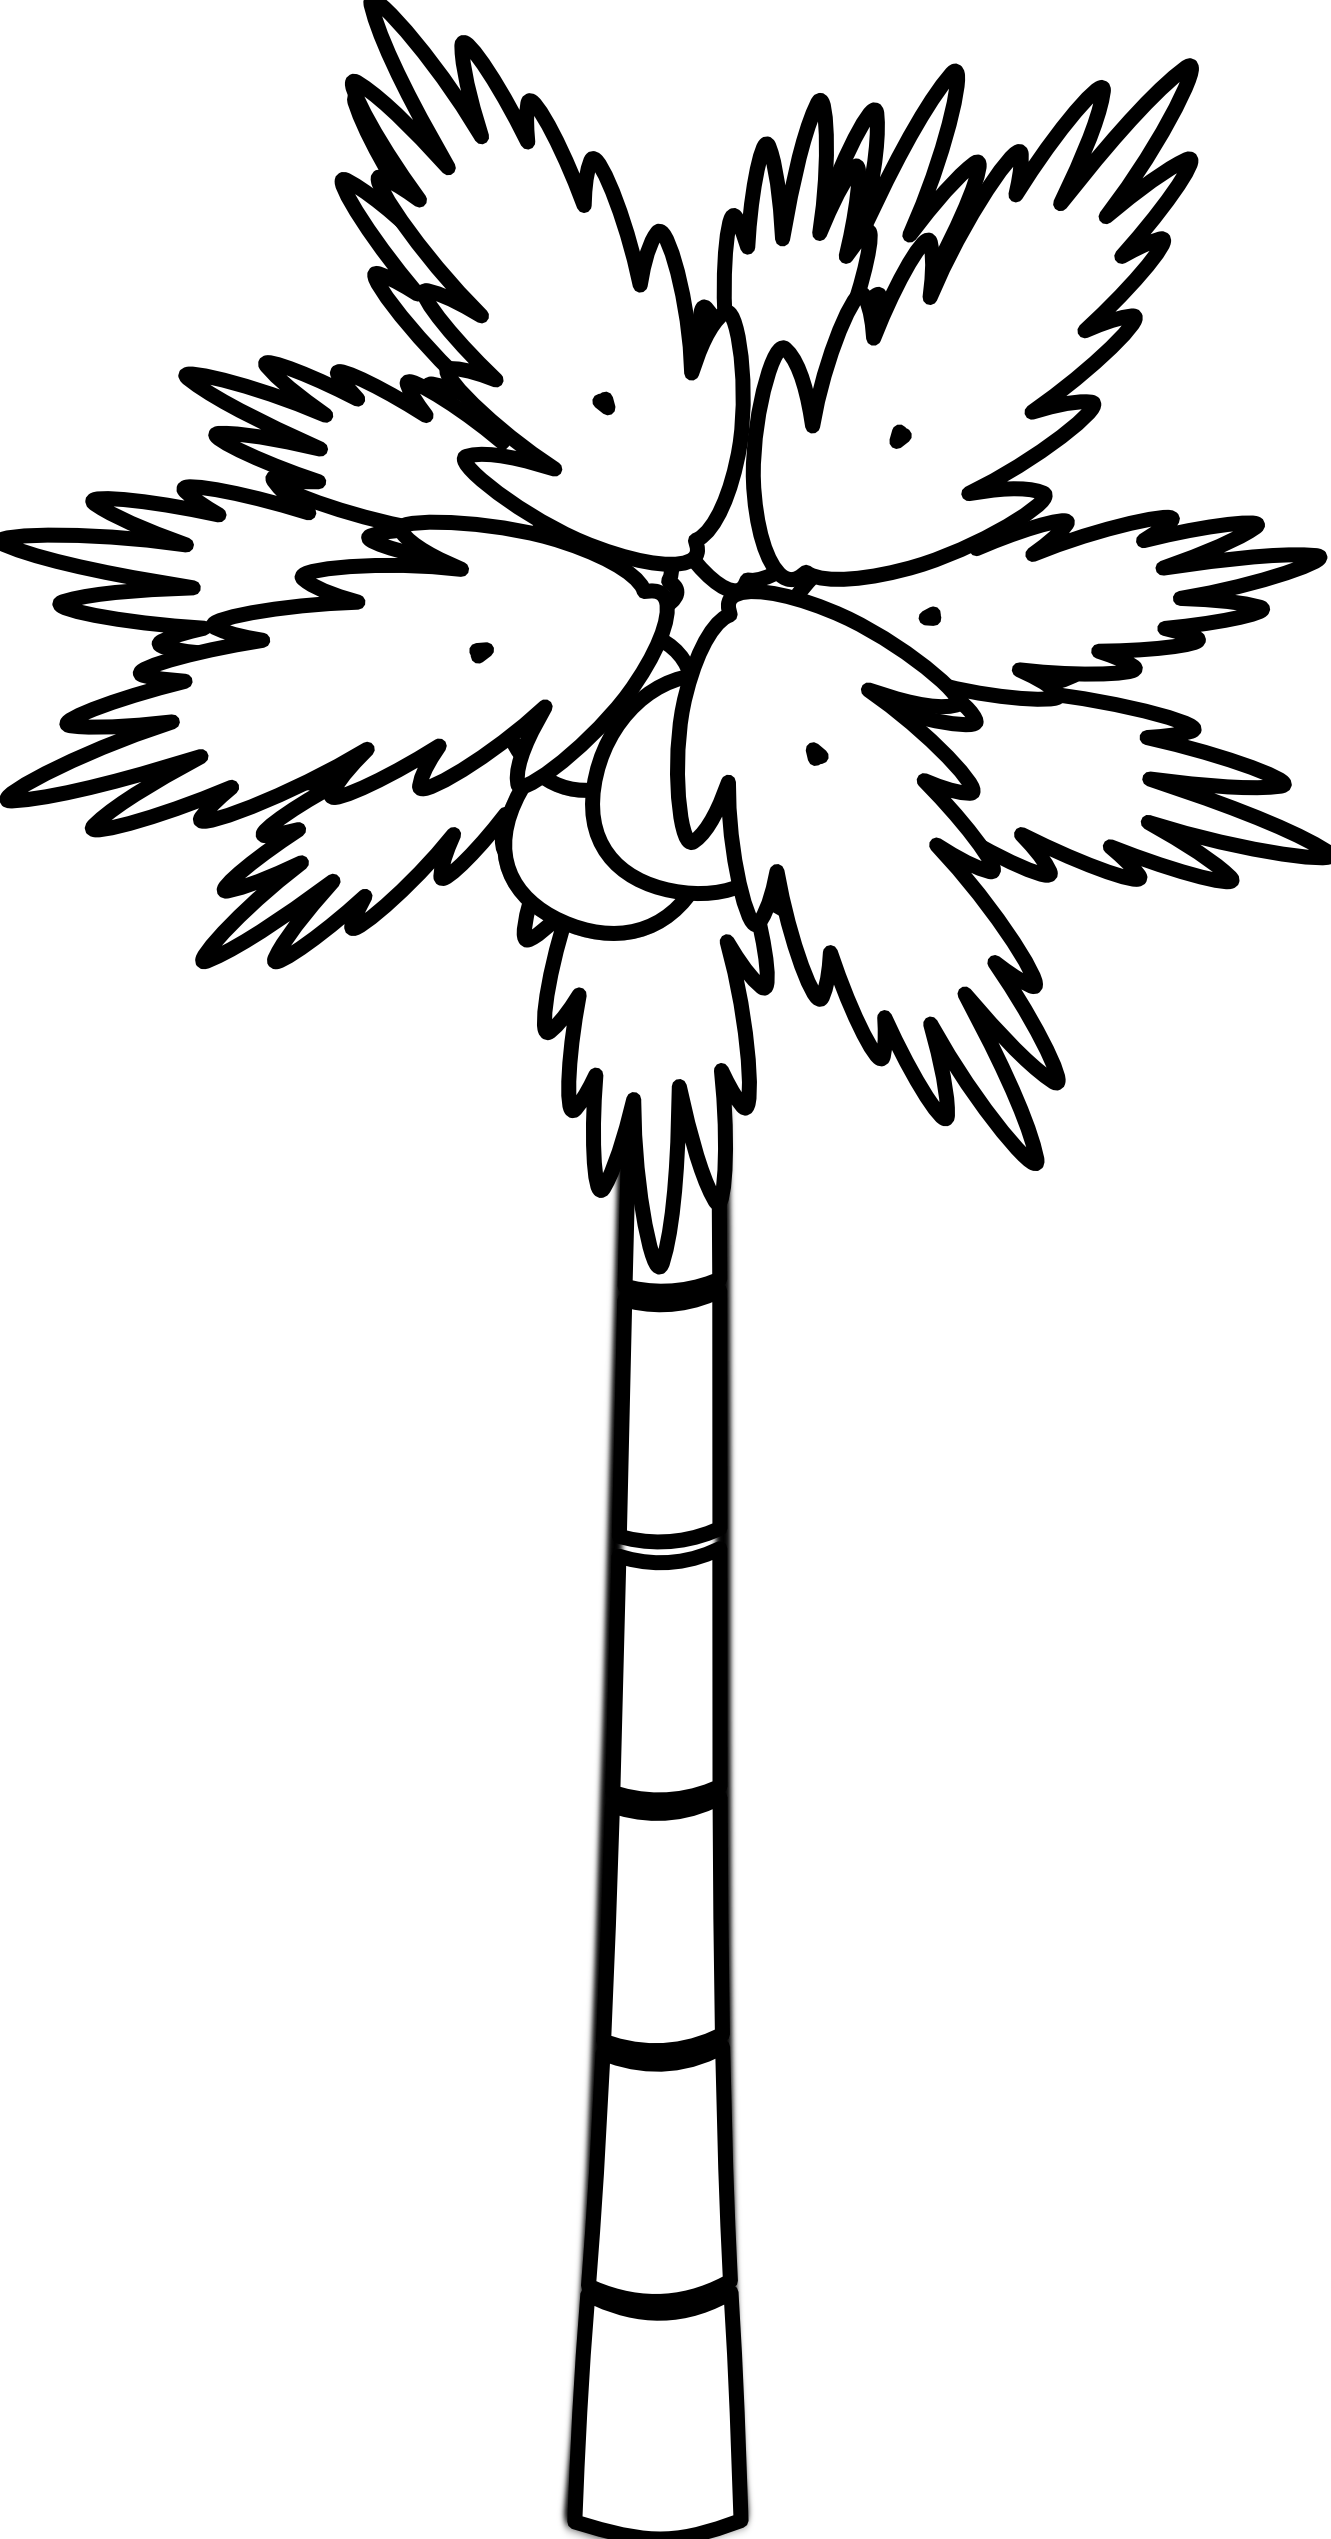 image library download Zeus clipart black and white. Tree rigezdxil